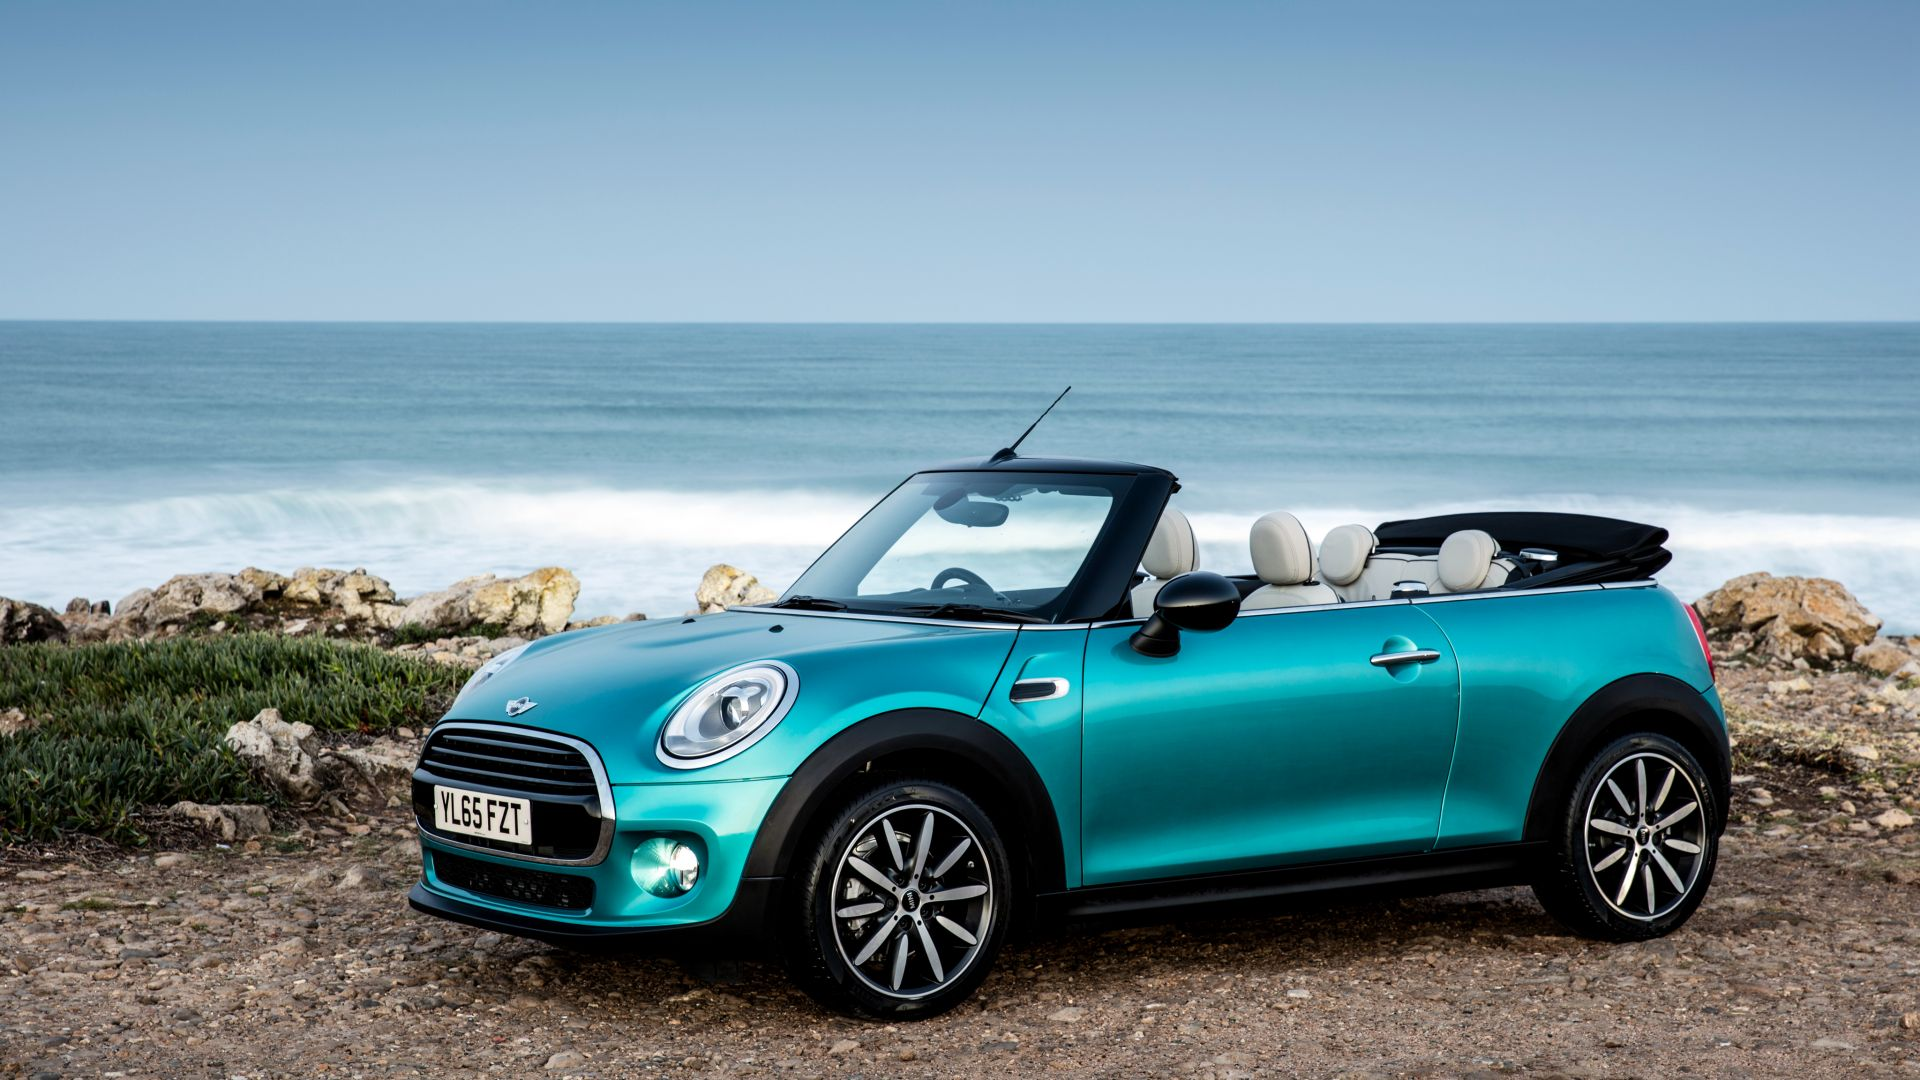 wallpaper mini cooper cabrio cabriolet blue cars bikes 8954. Black Bedroom Furniture Sets. Home Design Ideas